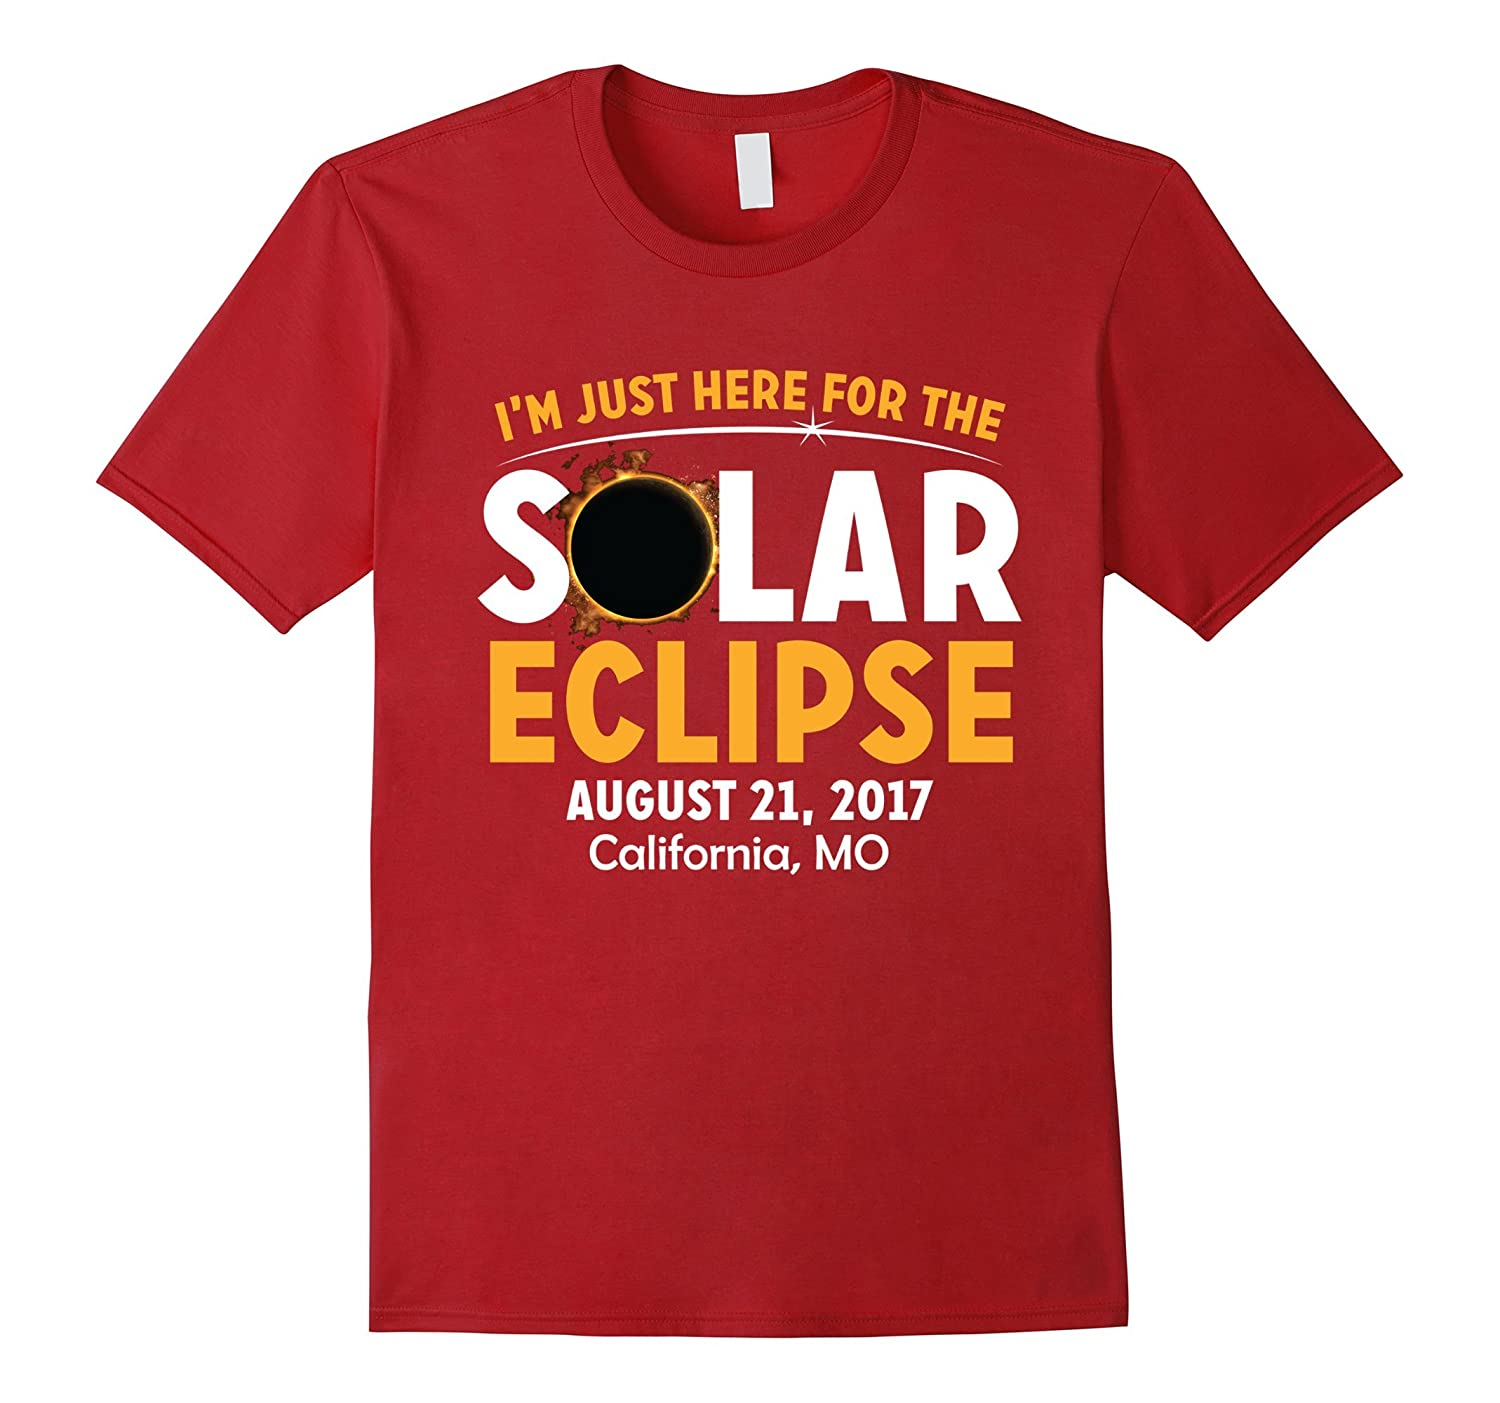 I'm Just Here for the Solar Eclipse T-Shirt California, MO-Art